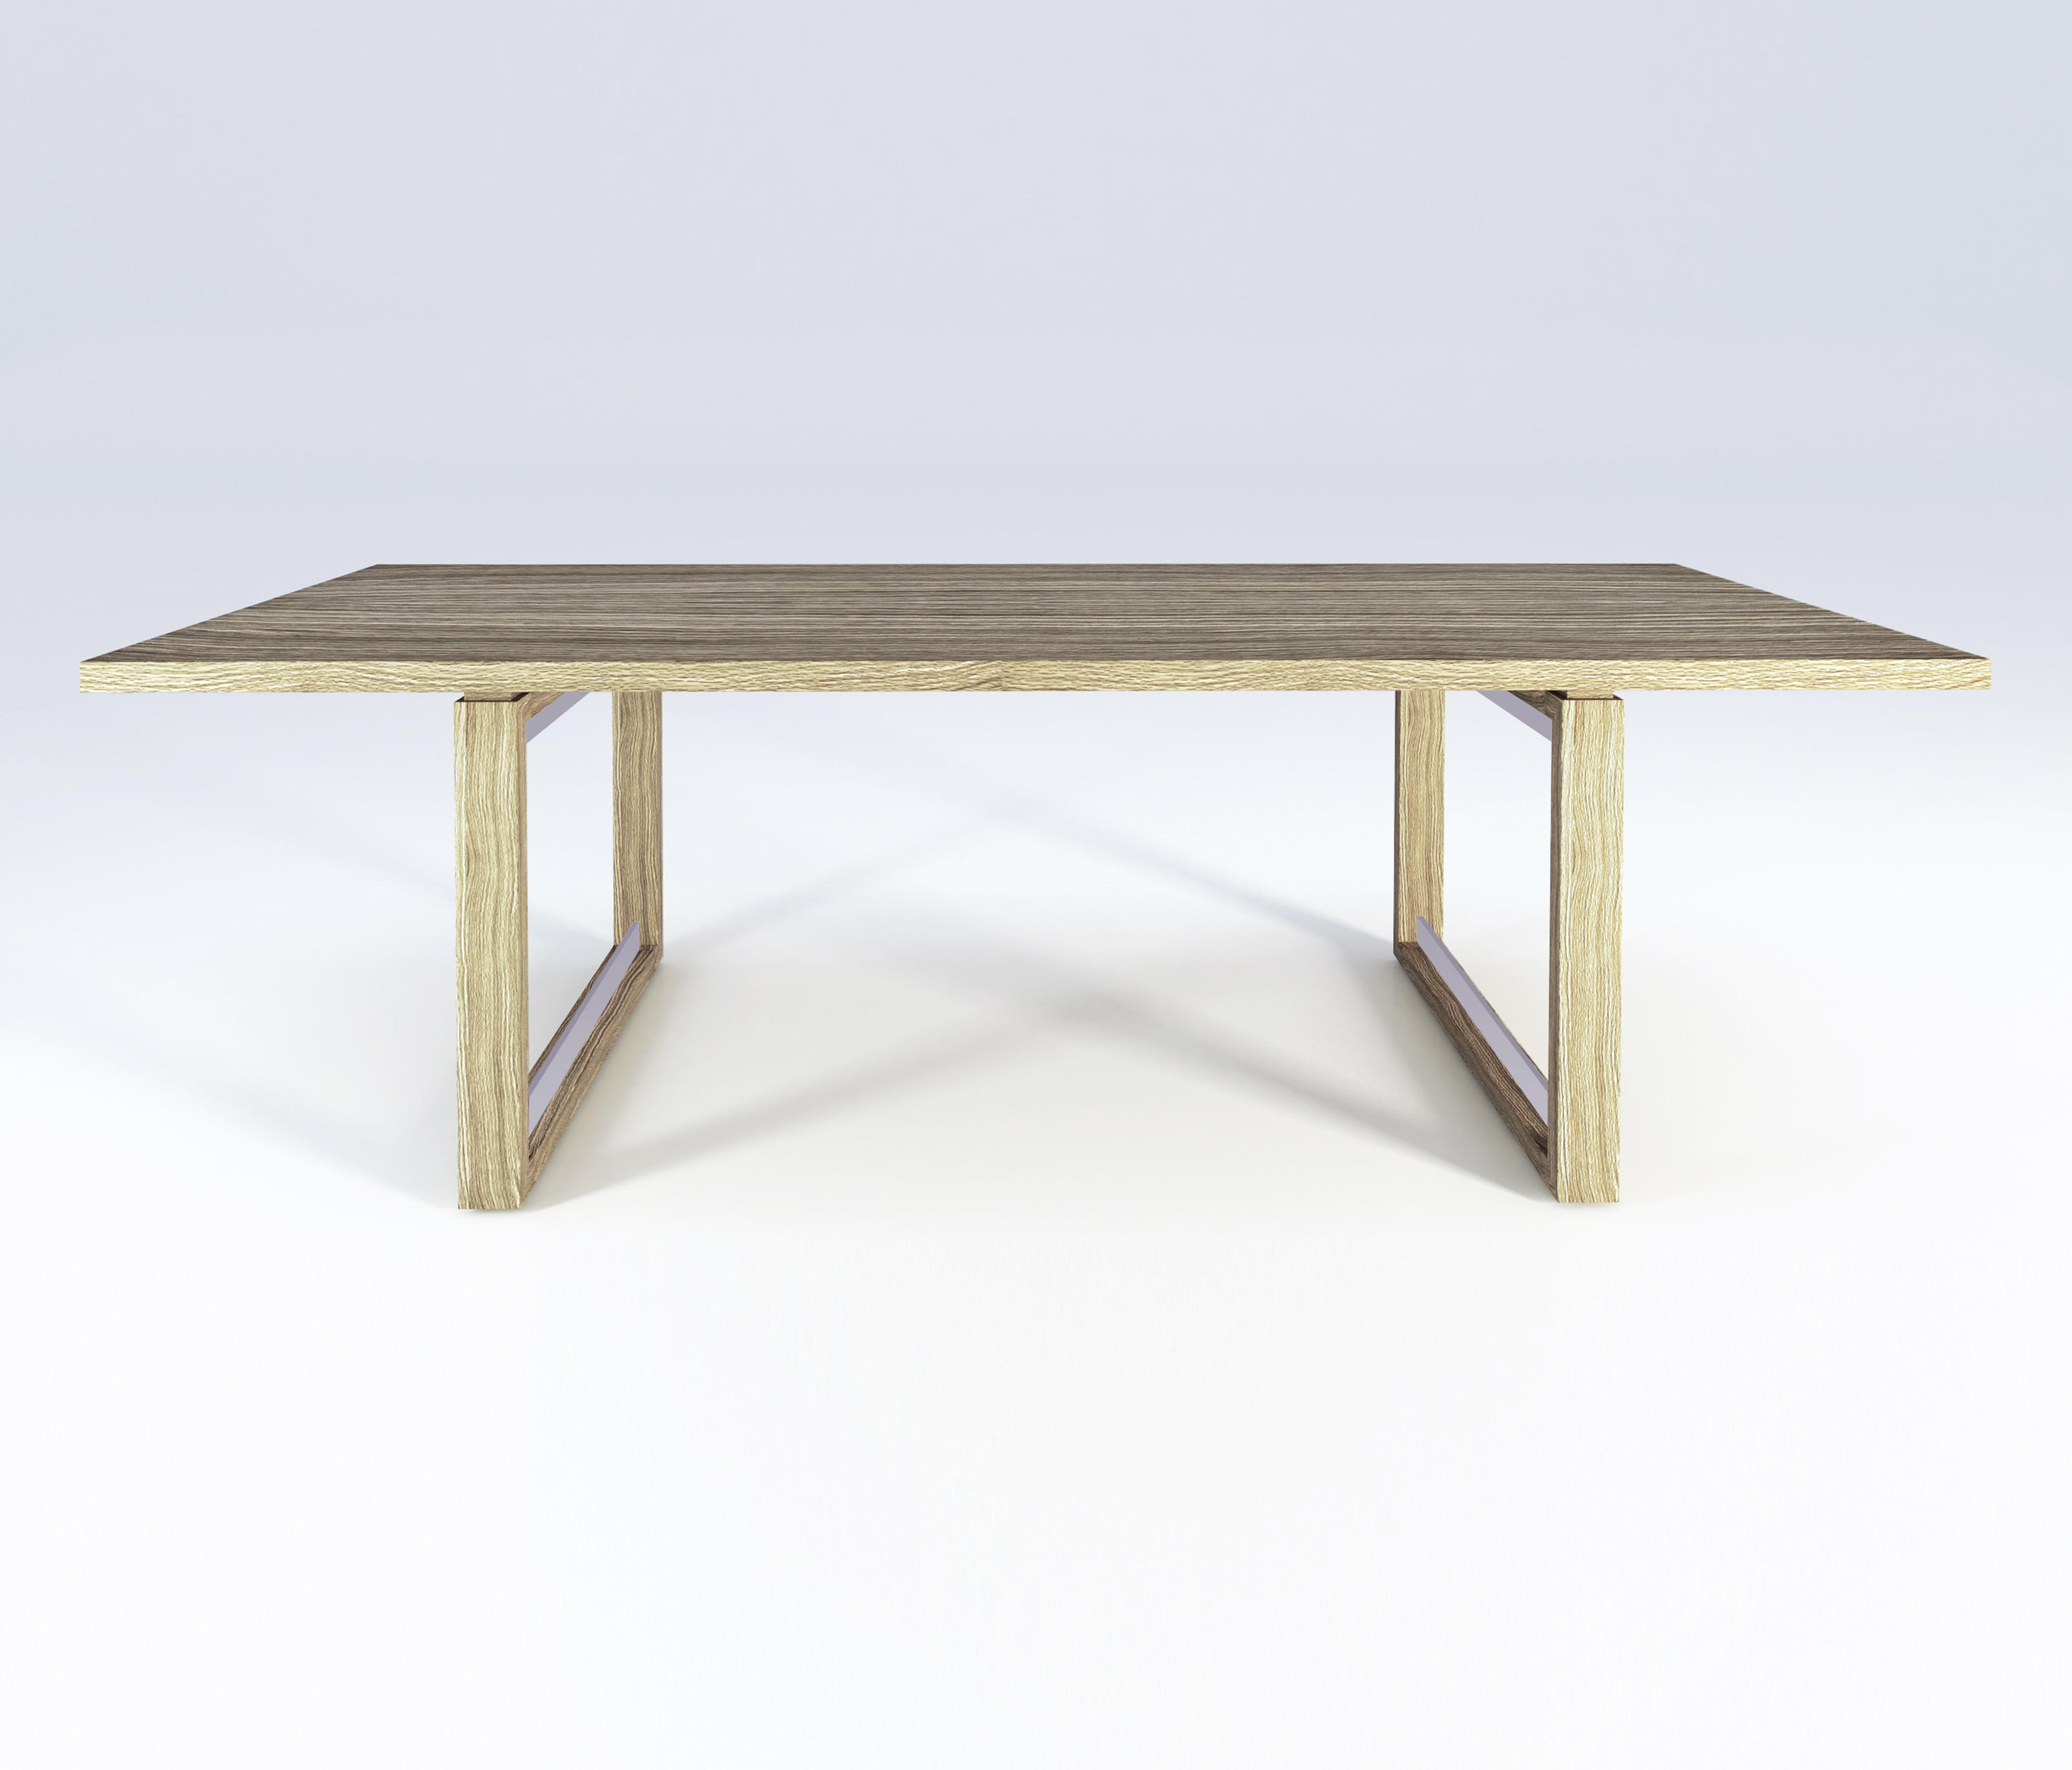 ... Bridge Table By Studio Brovhn | Dining Tables